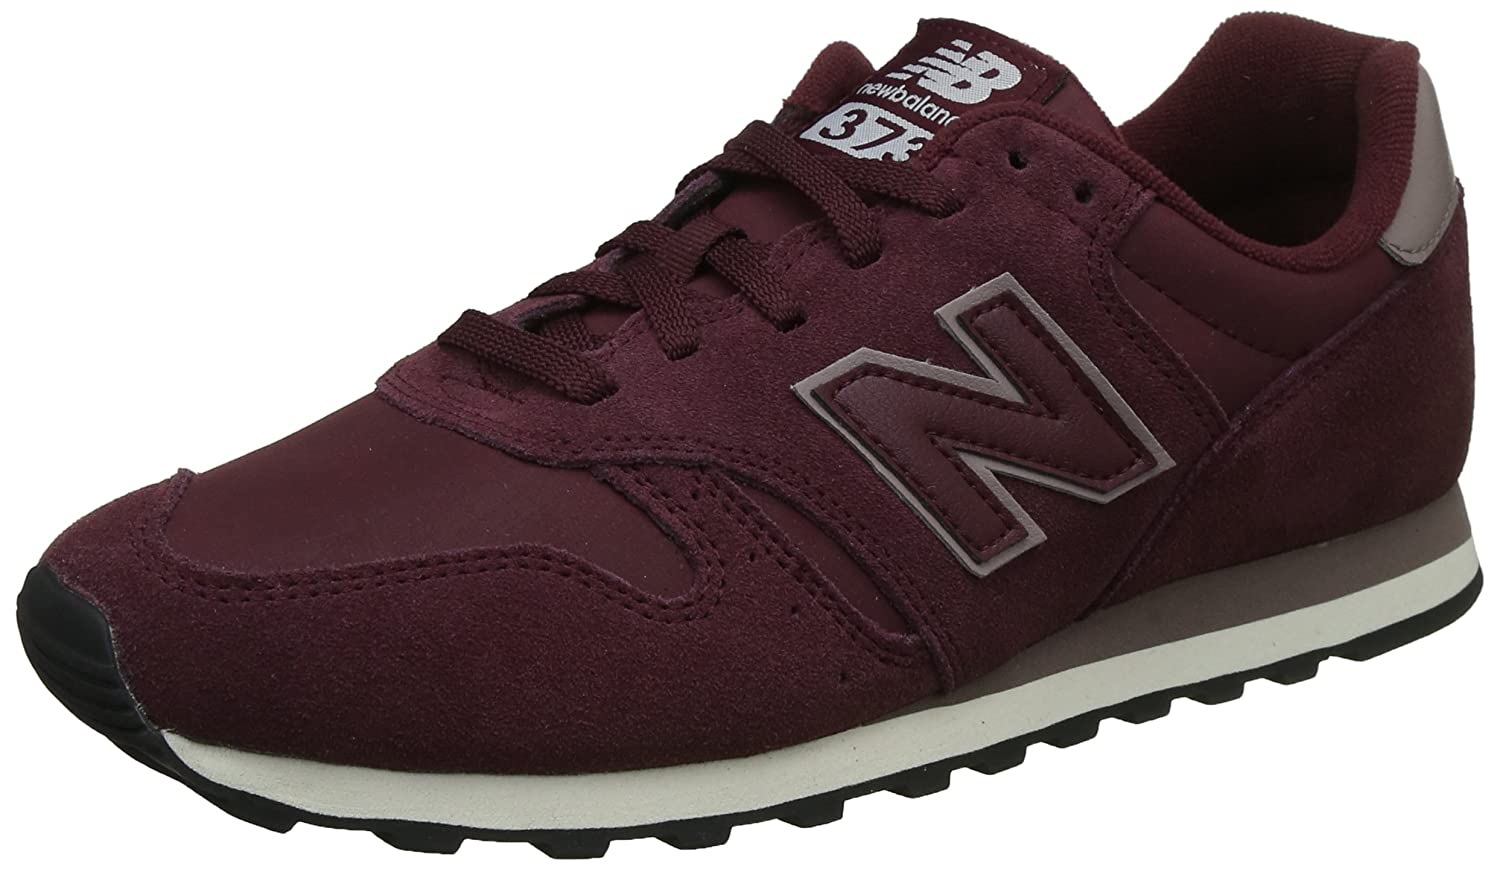 TALLA 40.5 EU. New Balance Ml373 Bgm, Zapatillas de Deporte Unisex Adulto